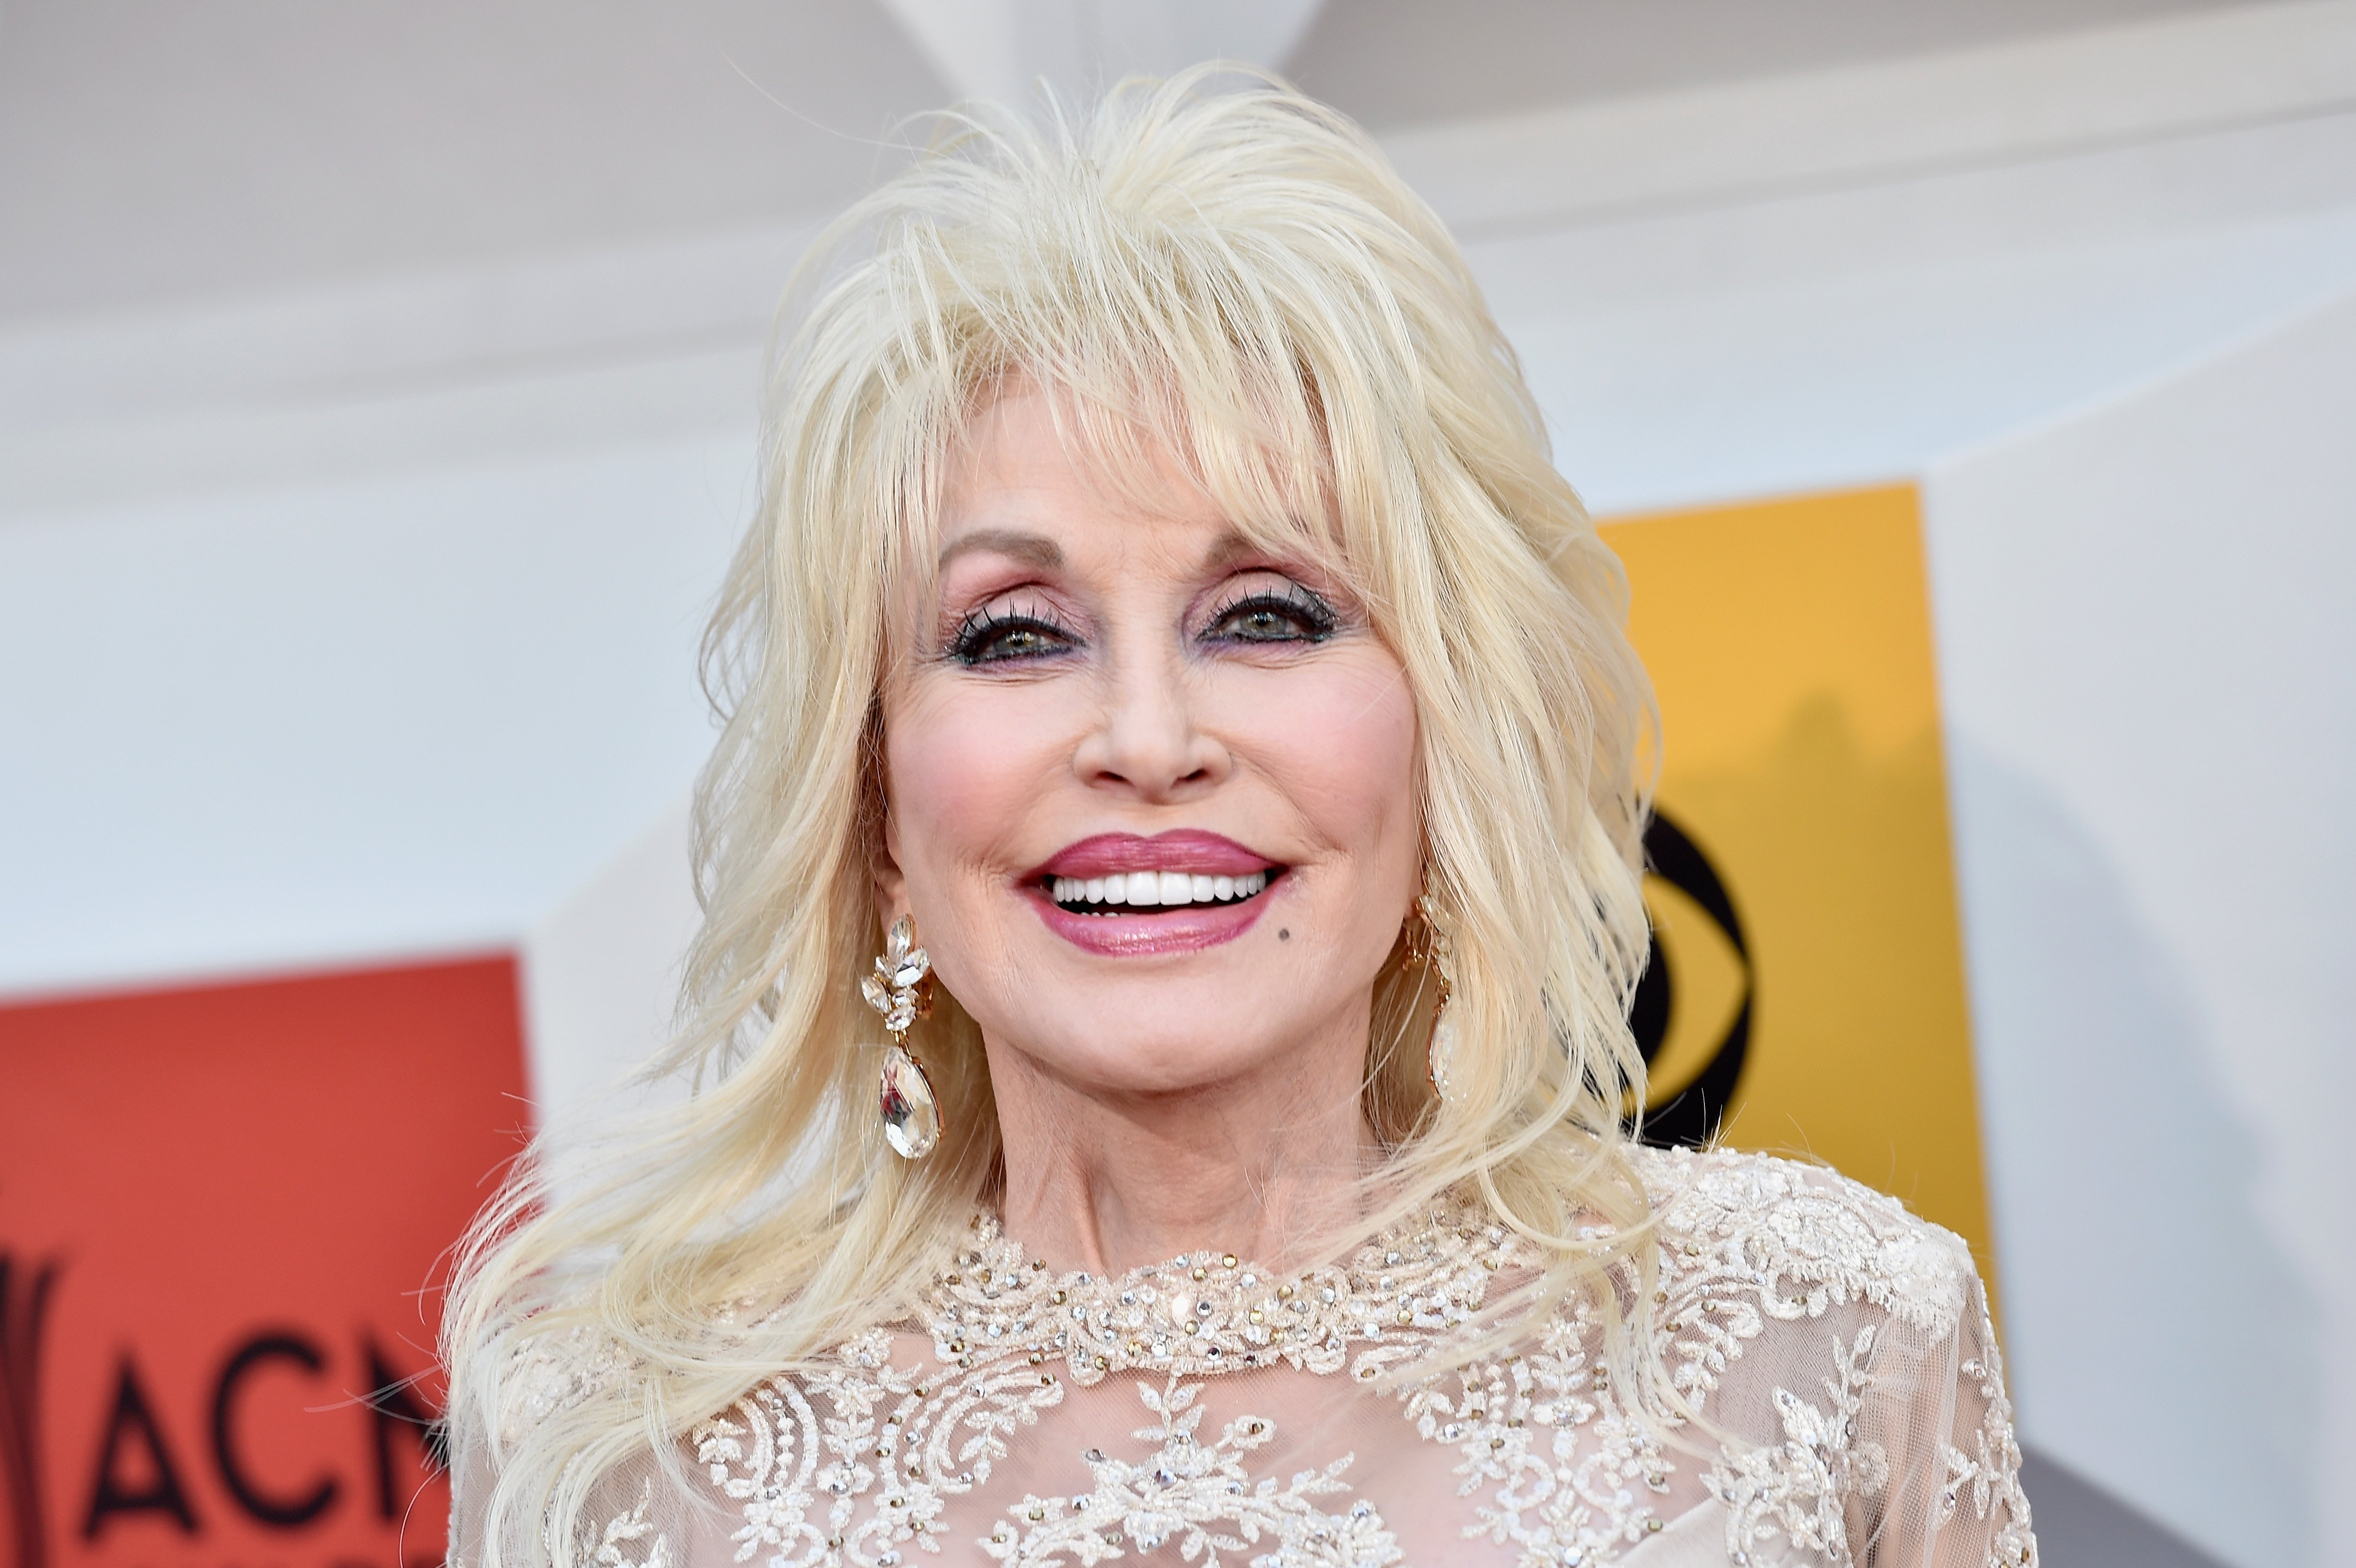 Dolly Parton at the 51st Academy of Country Music Awards at MGM Grand Garden Arena on April 3, 2016 in Las Vegas, Nevada. | Photo: Getty Images